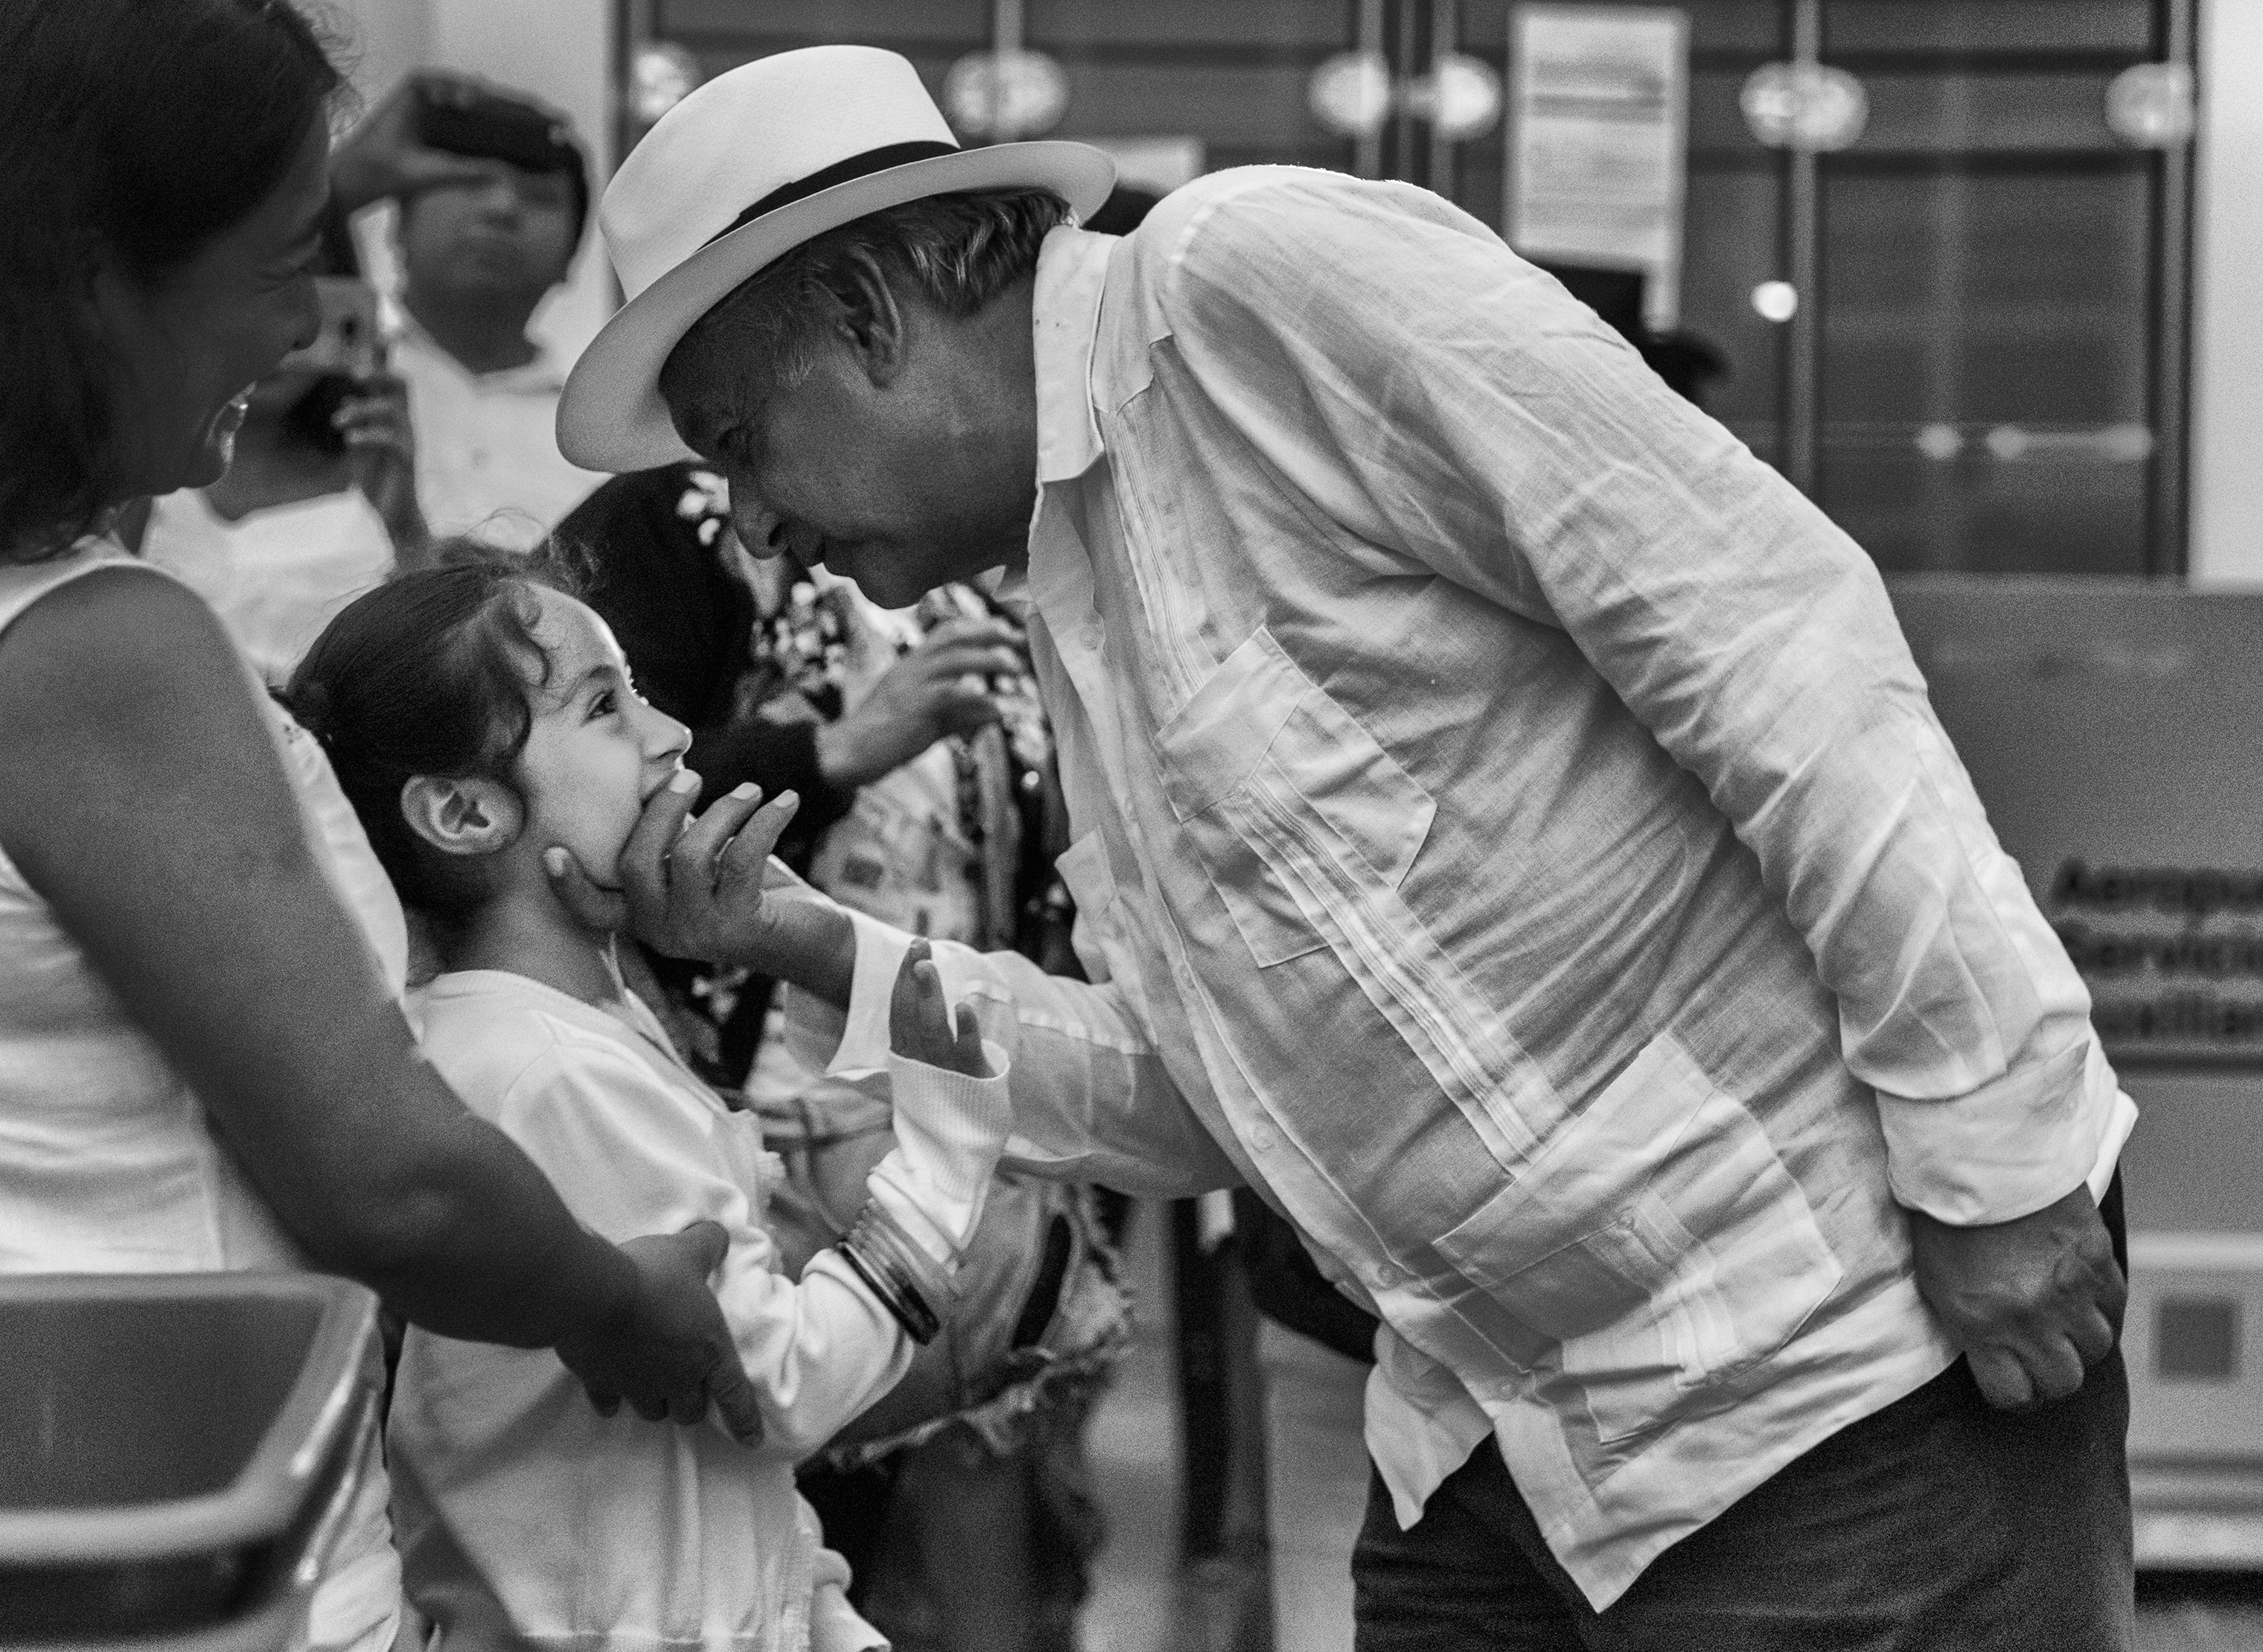 López Obrador greets a young girl in a departures lounge at the airport in Campeche, following a campaign rally, on June 26. He made three final stops on the Yucatán Peninsula before heading back to Mexico City.